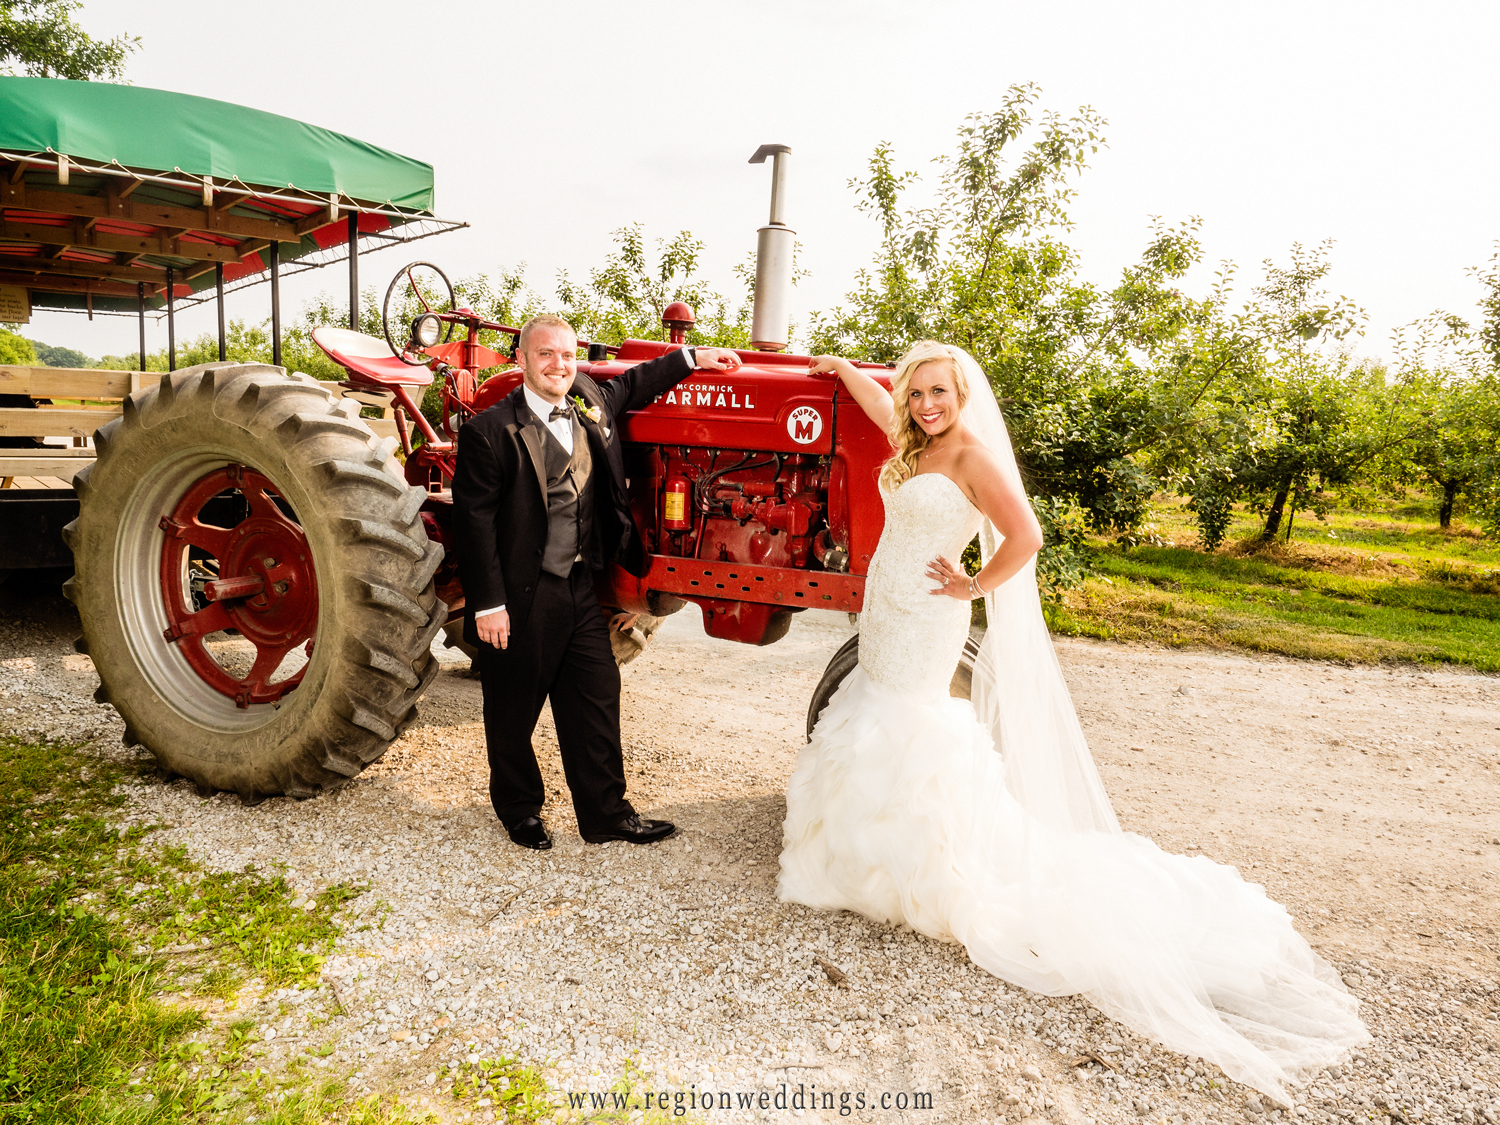 The bride and groom alongside a tractor at County Line Orchard.